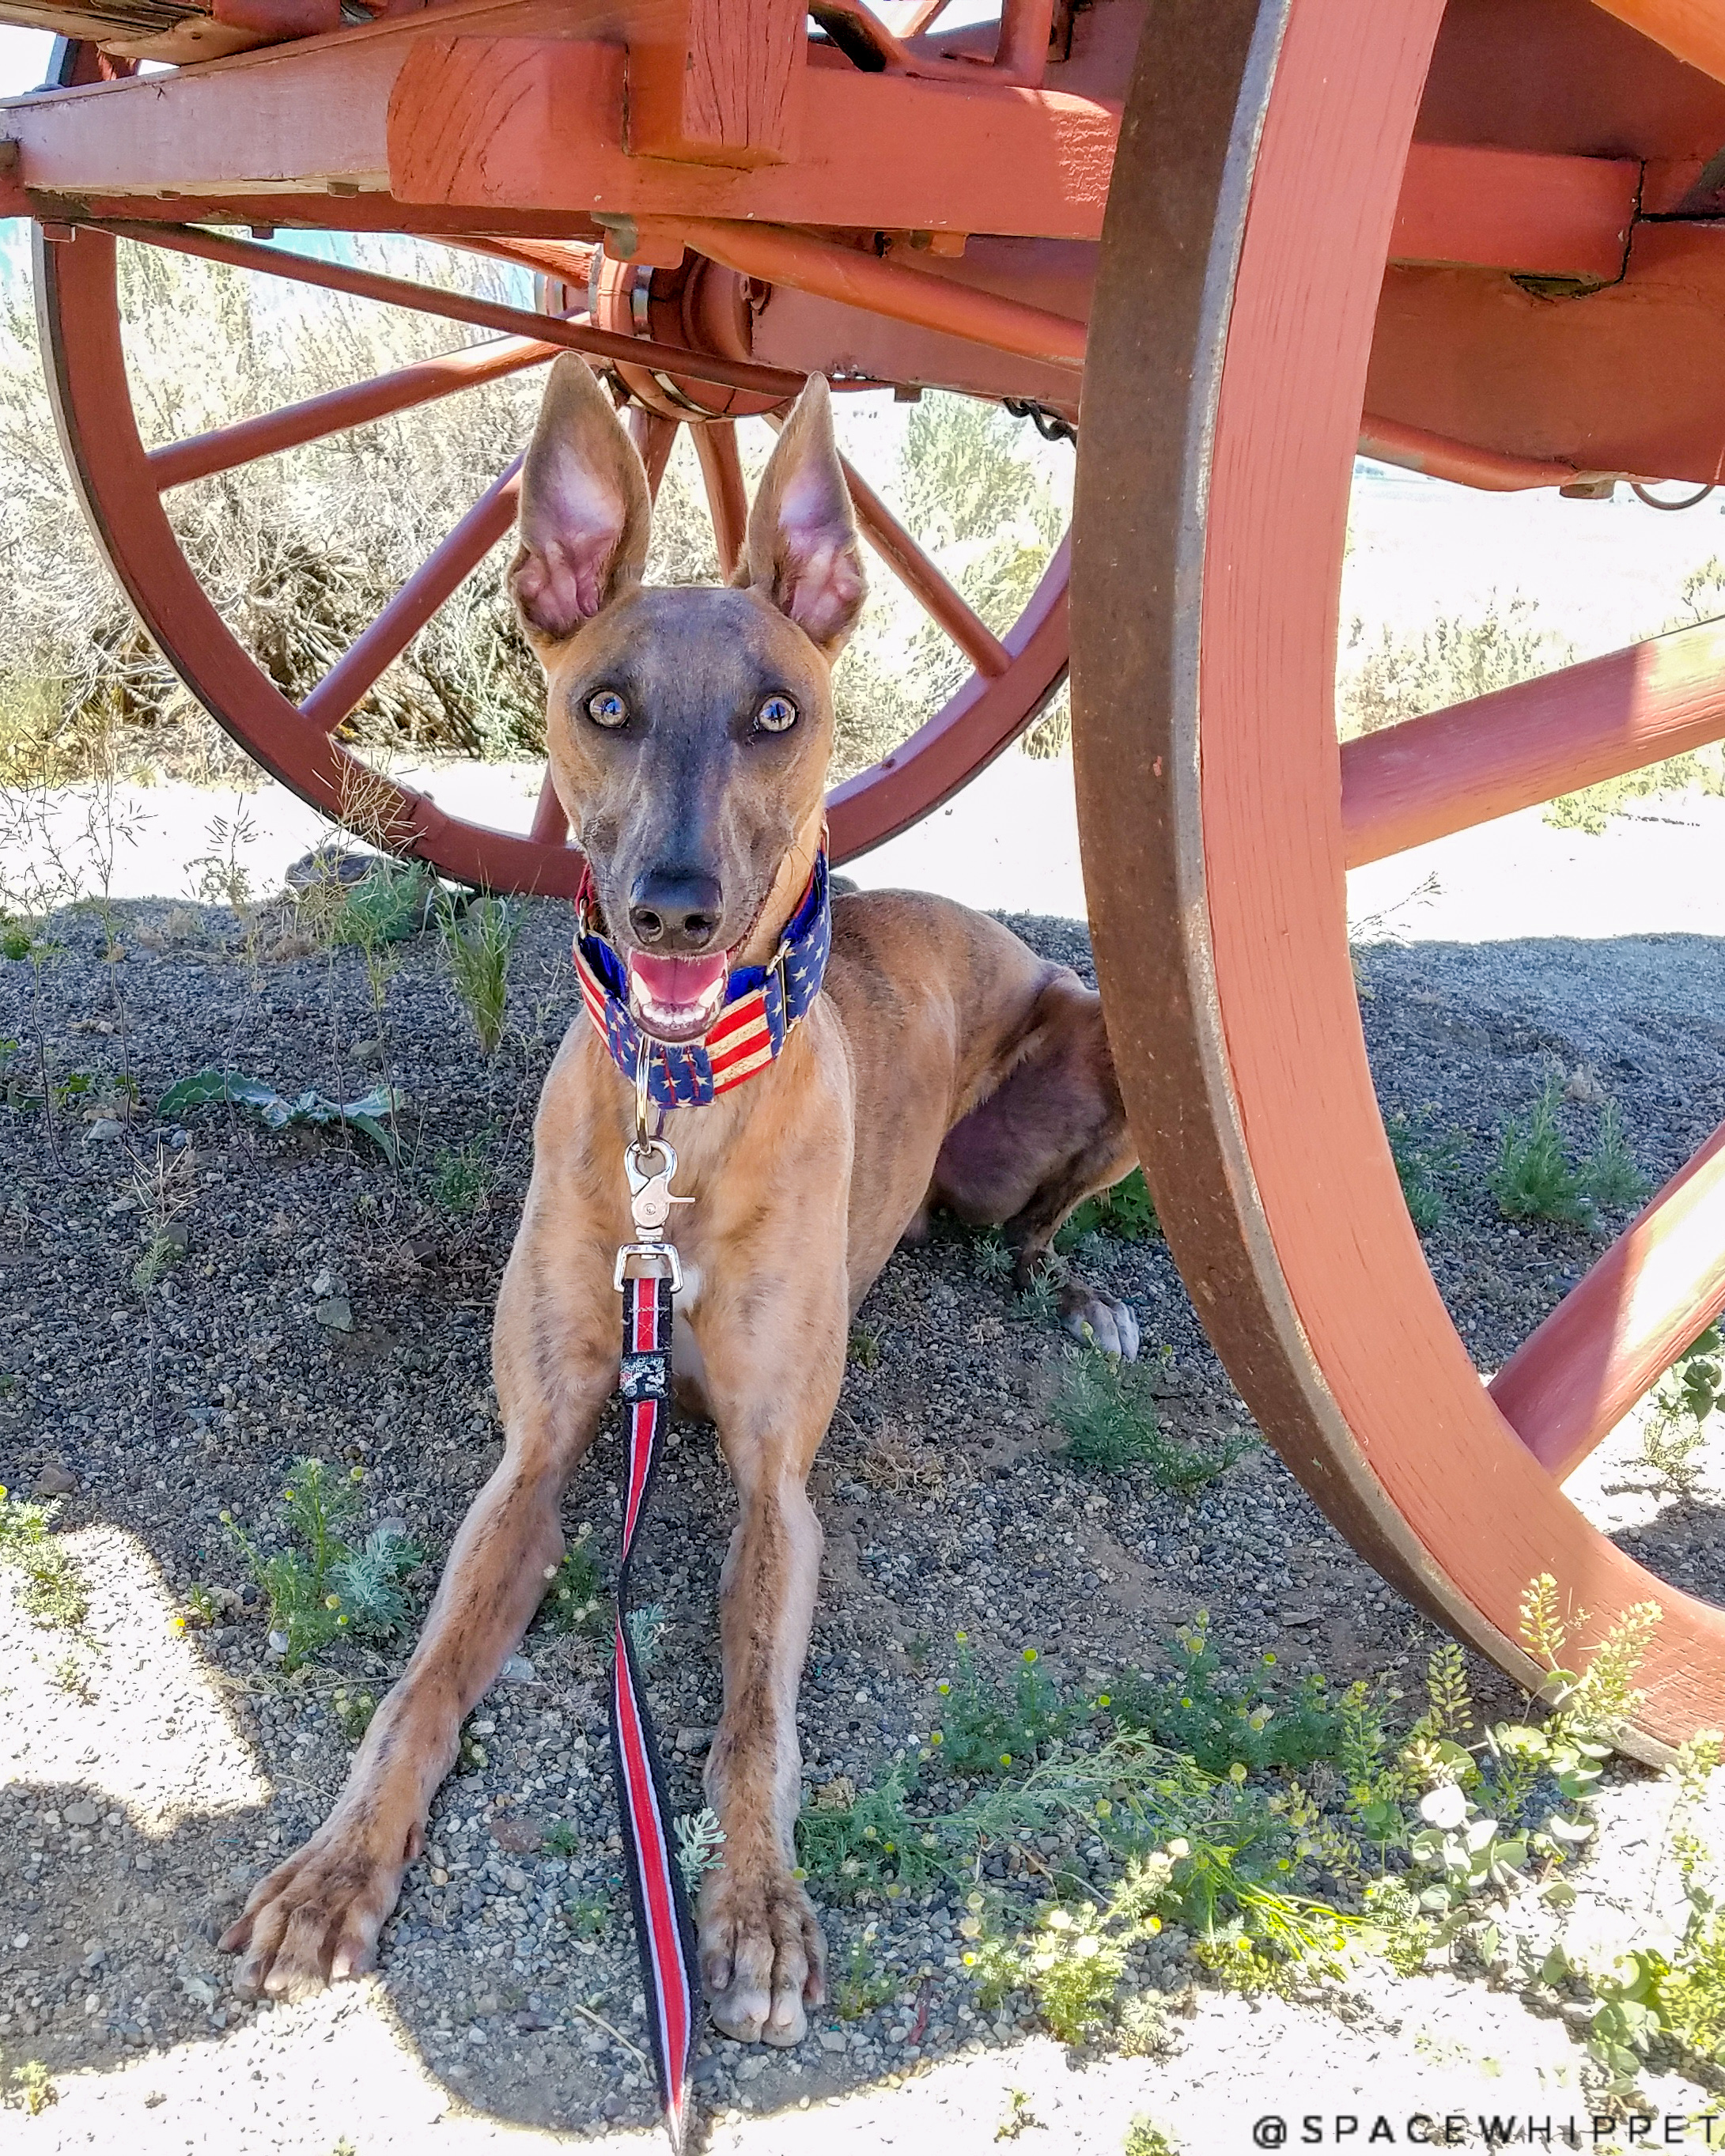 Kuiper relaxes under a covered wagon.